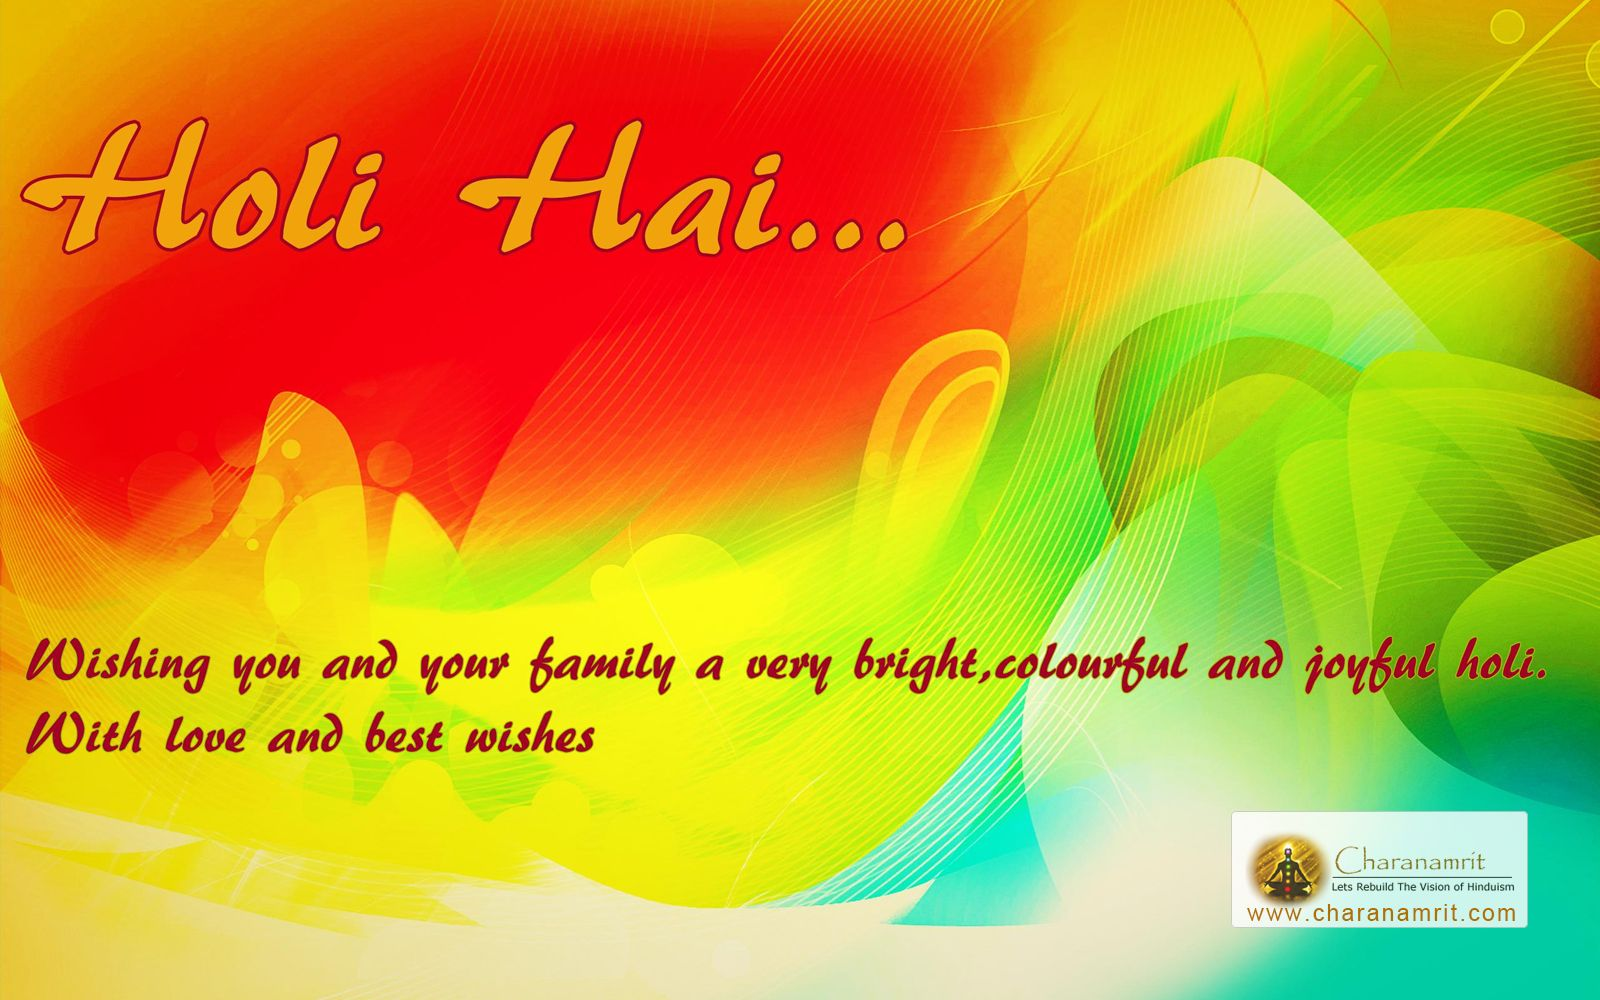 Download Free Wallpapers Of Holi Festival Holika Dahan And Other